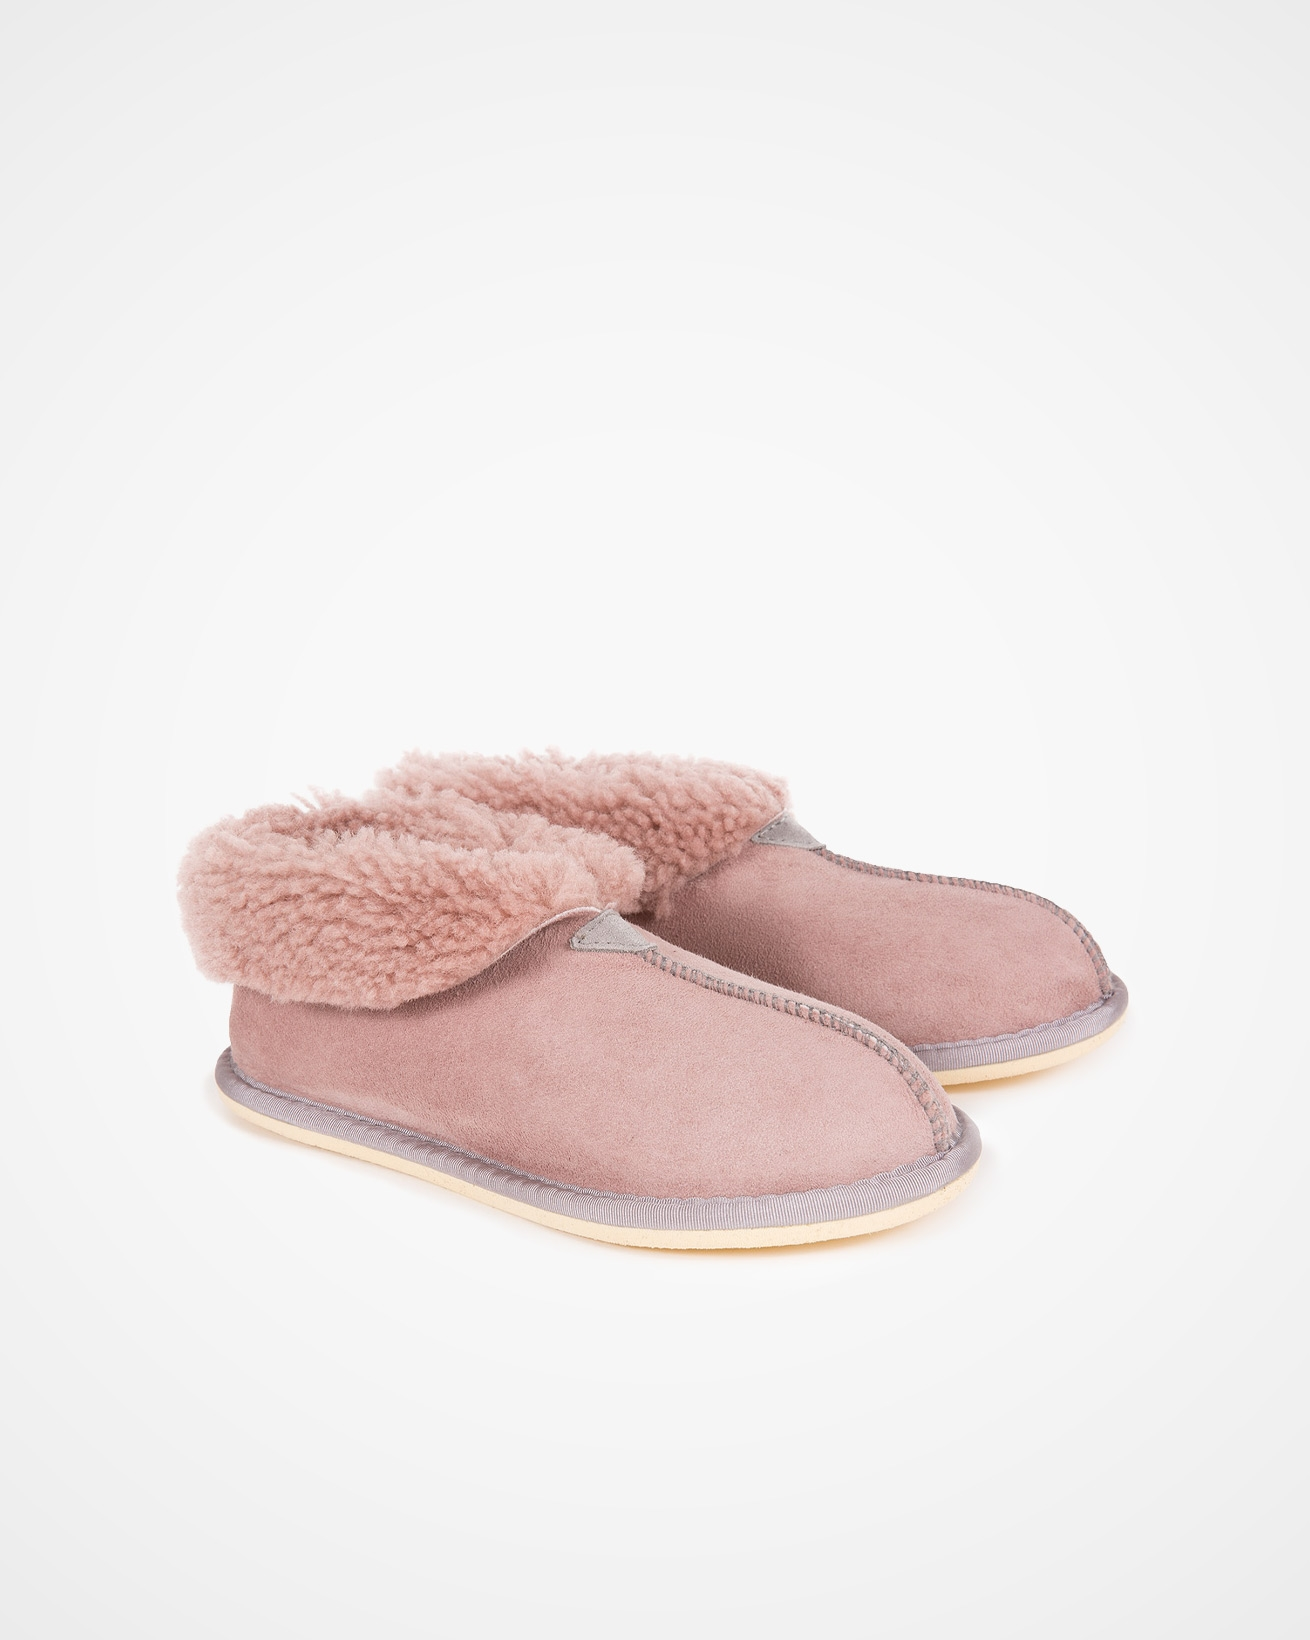 Ladies Sheepskin Bootee Slipper - Size 7 - Dusky Pink - 2015